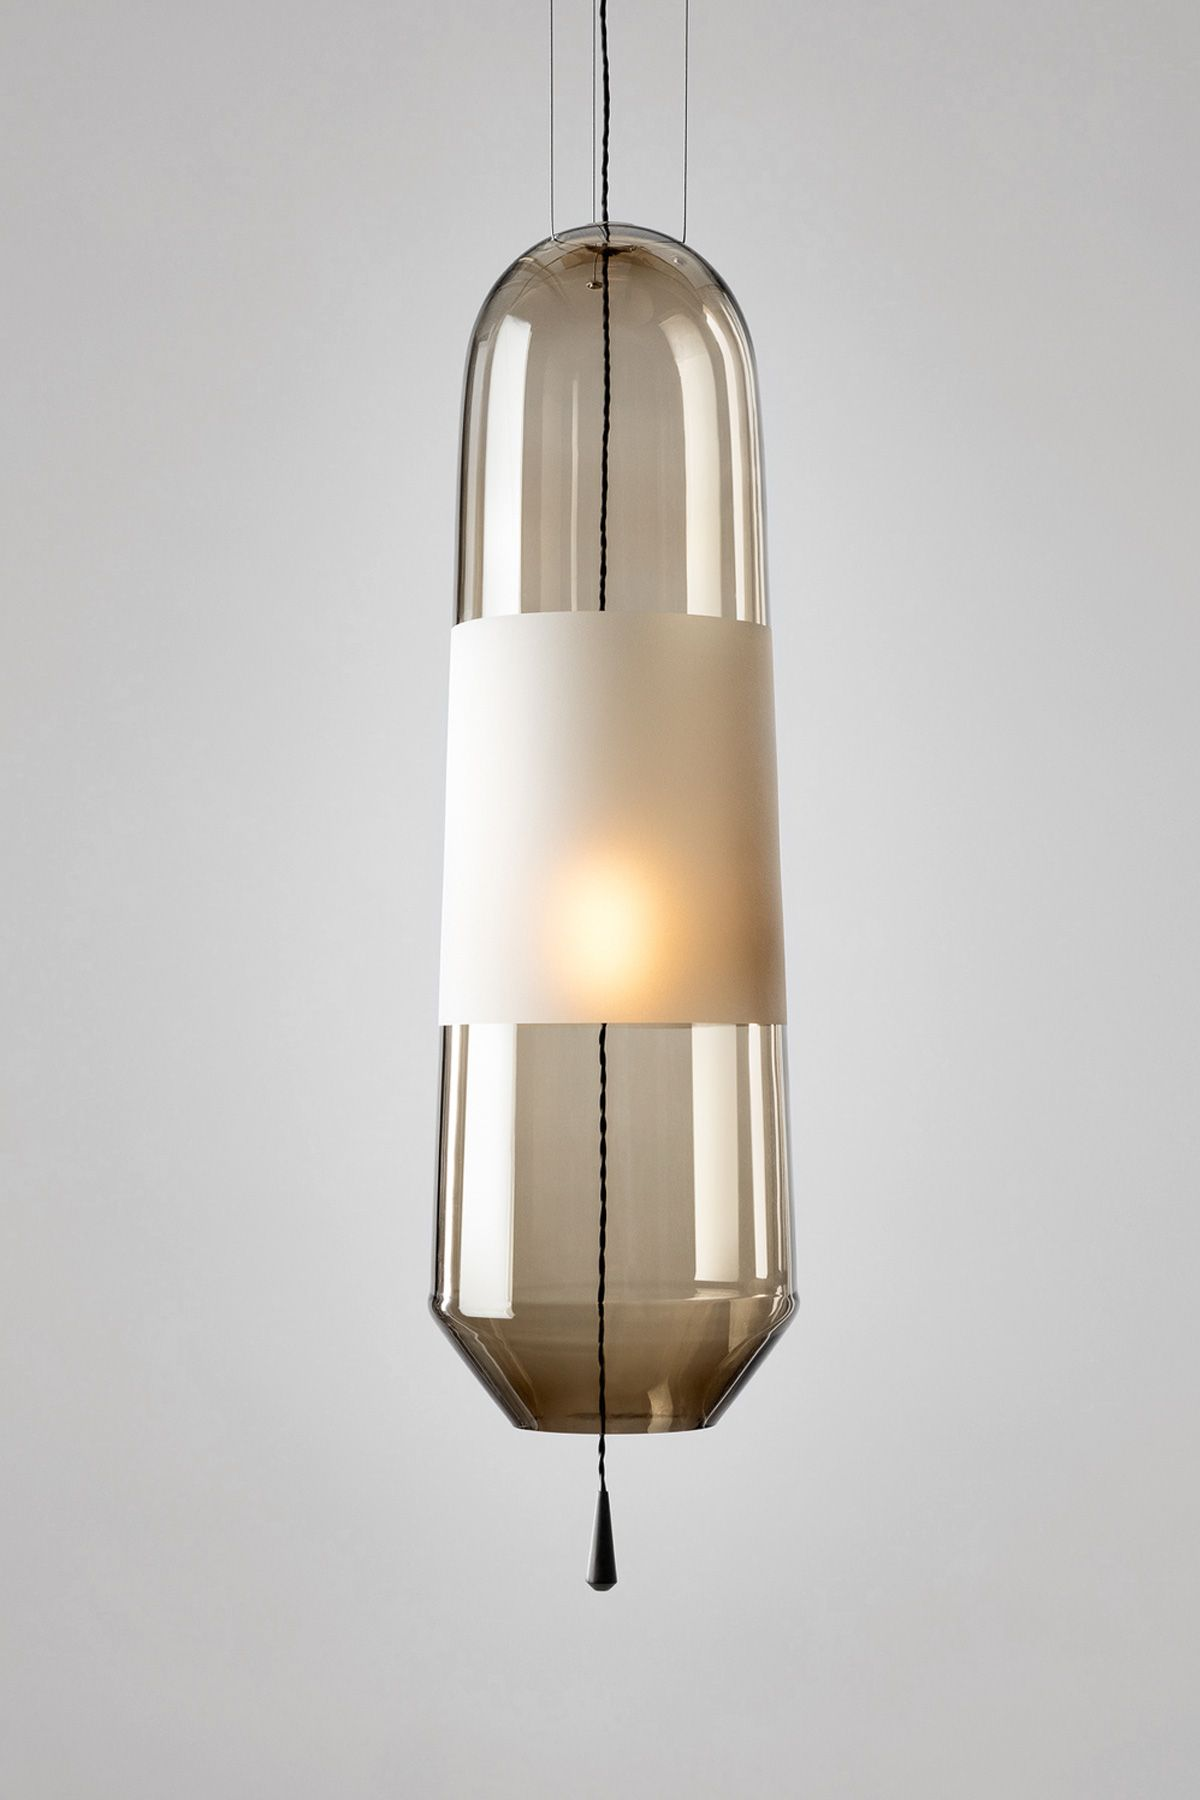 Italienische Küchenlampen 6 Favorite Designs Of Dutch Design Week Mydubio Shapes